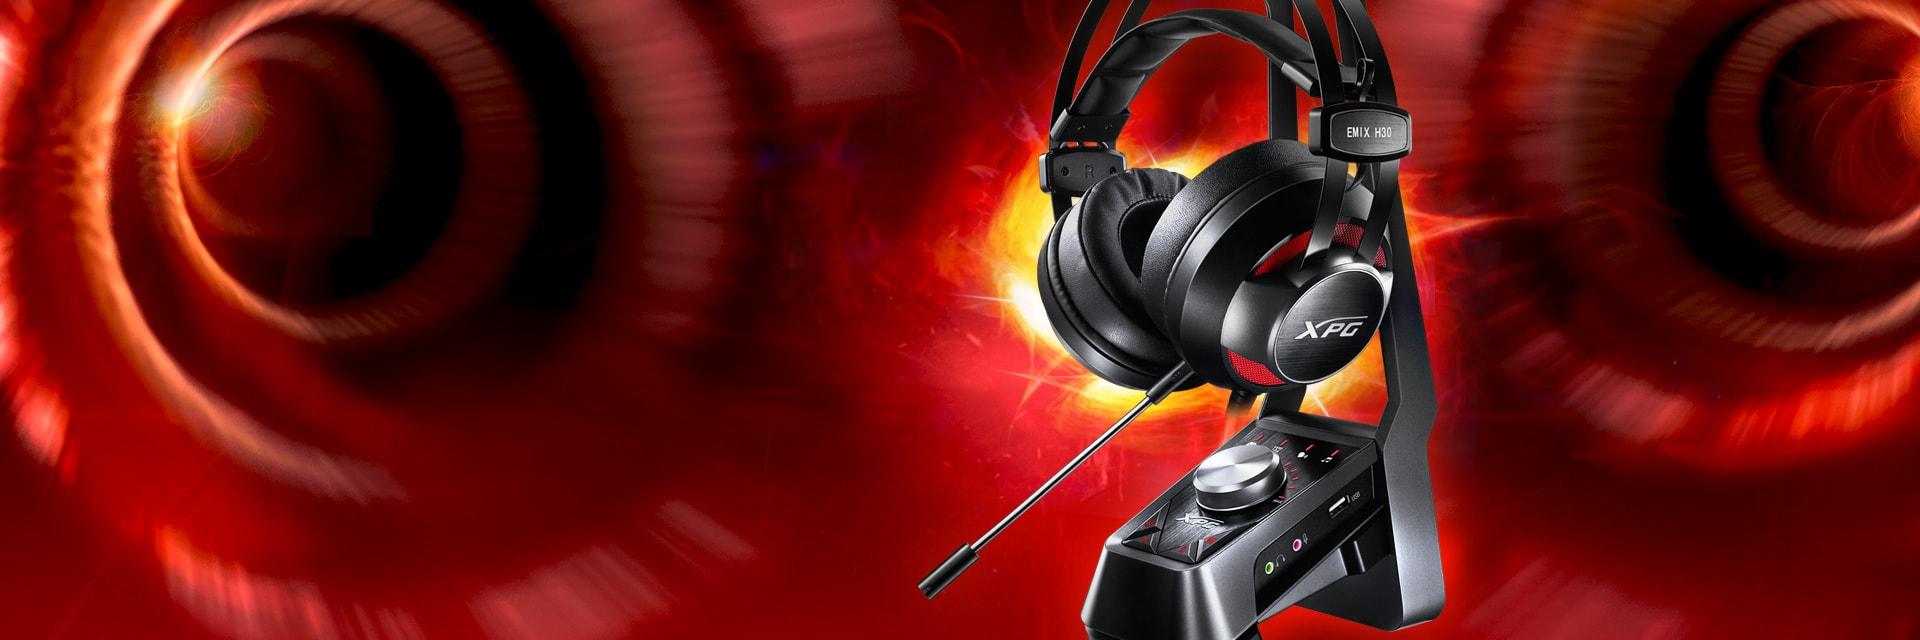 ADATA-XPG-EMIX-H30-Gaming-Headset-SOLOX-F30-Amplifier-3